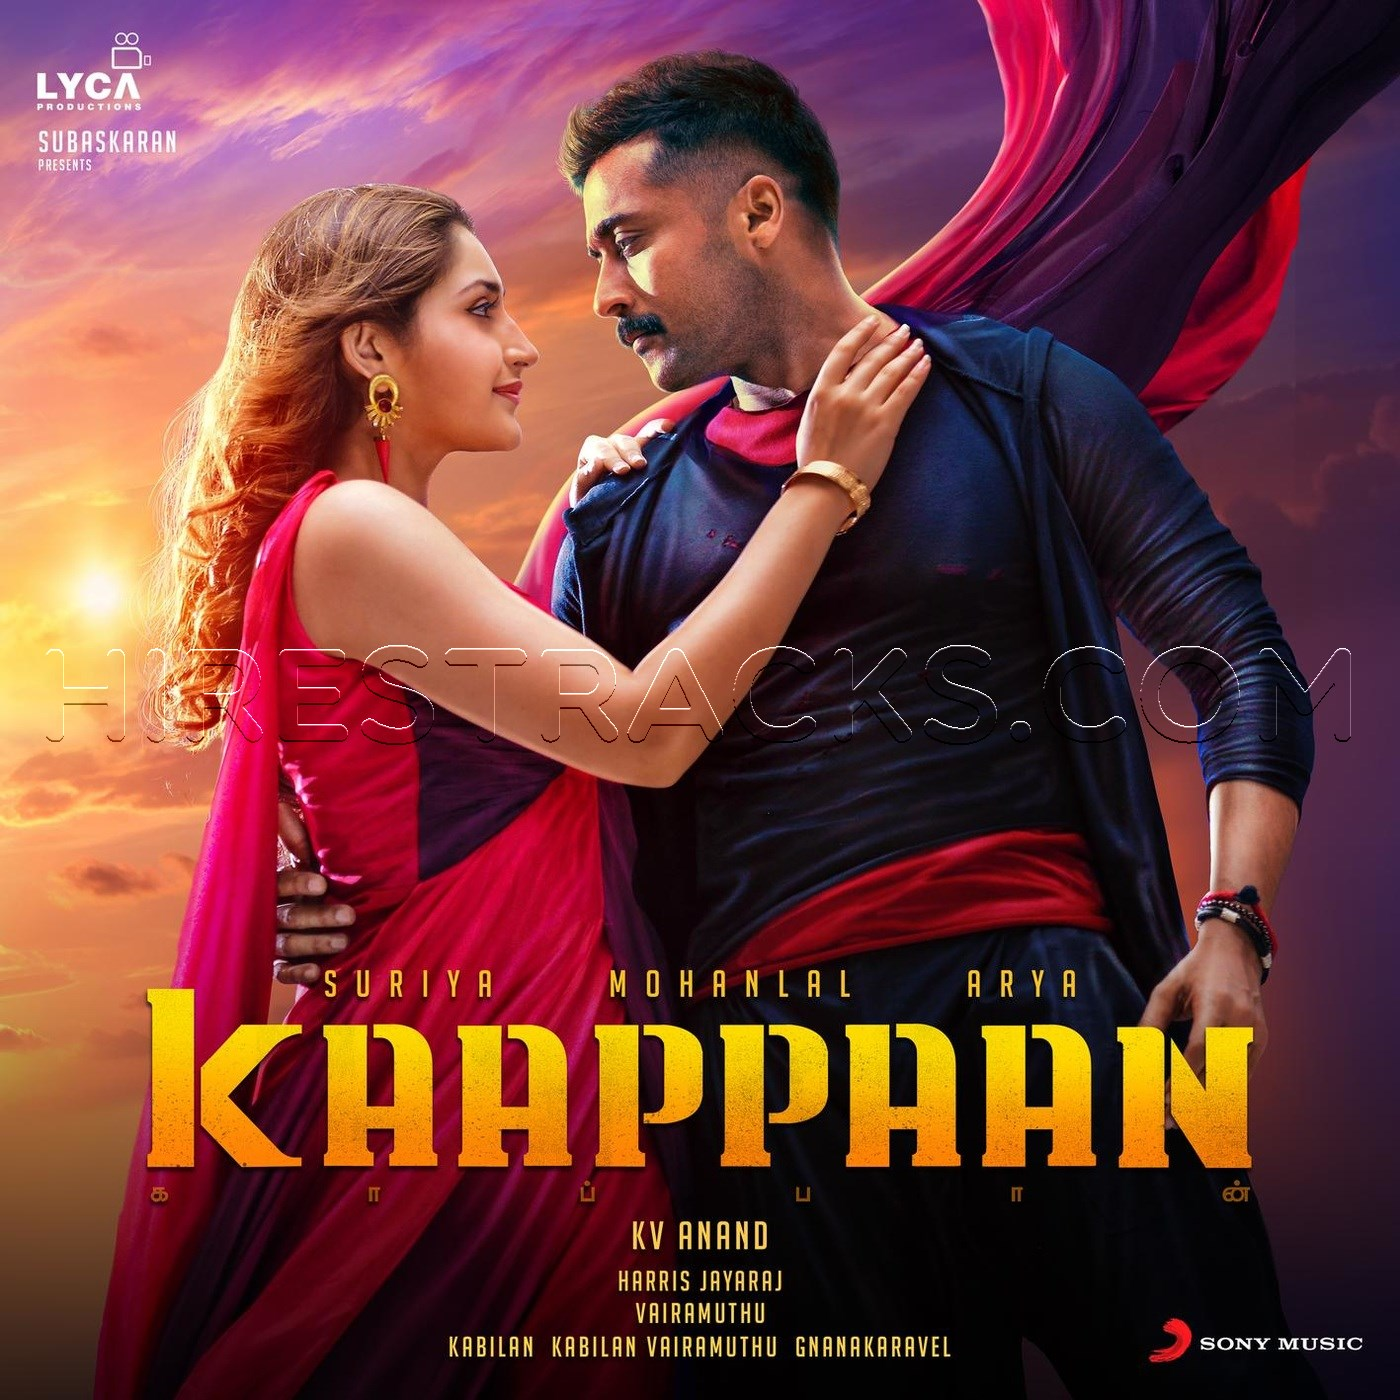 Kaappaan (2019) (Harris Jayaraj) (Sony Music) [Digital-DL-FLAC]